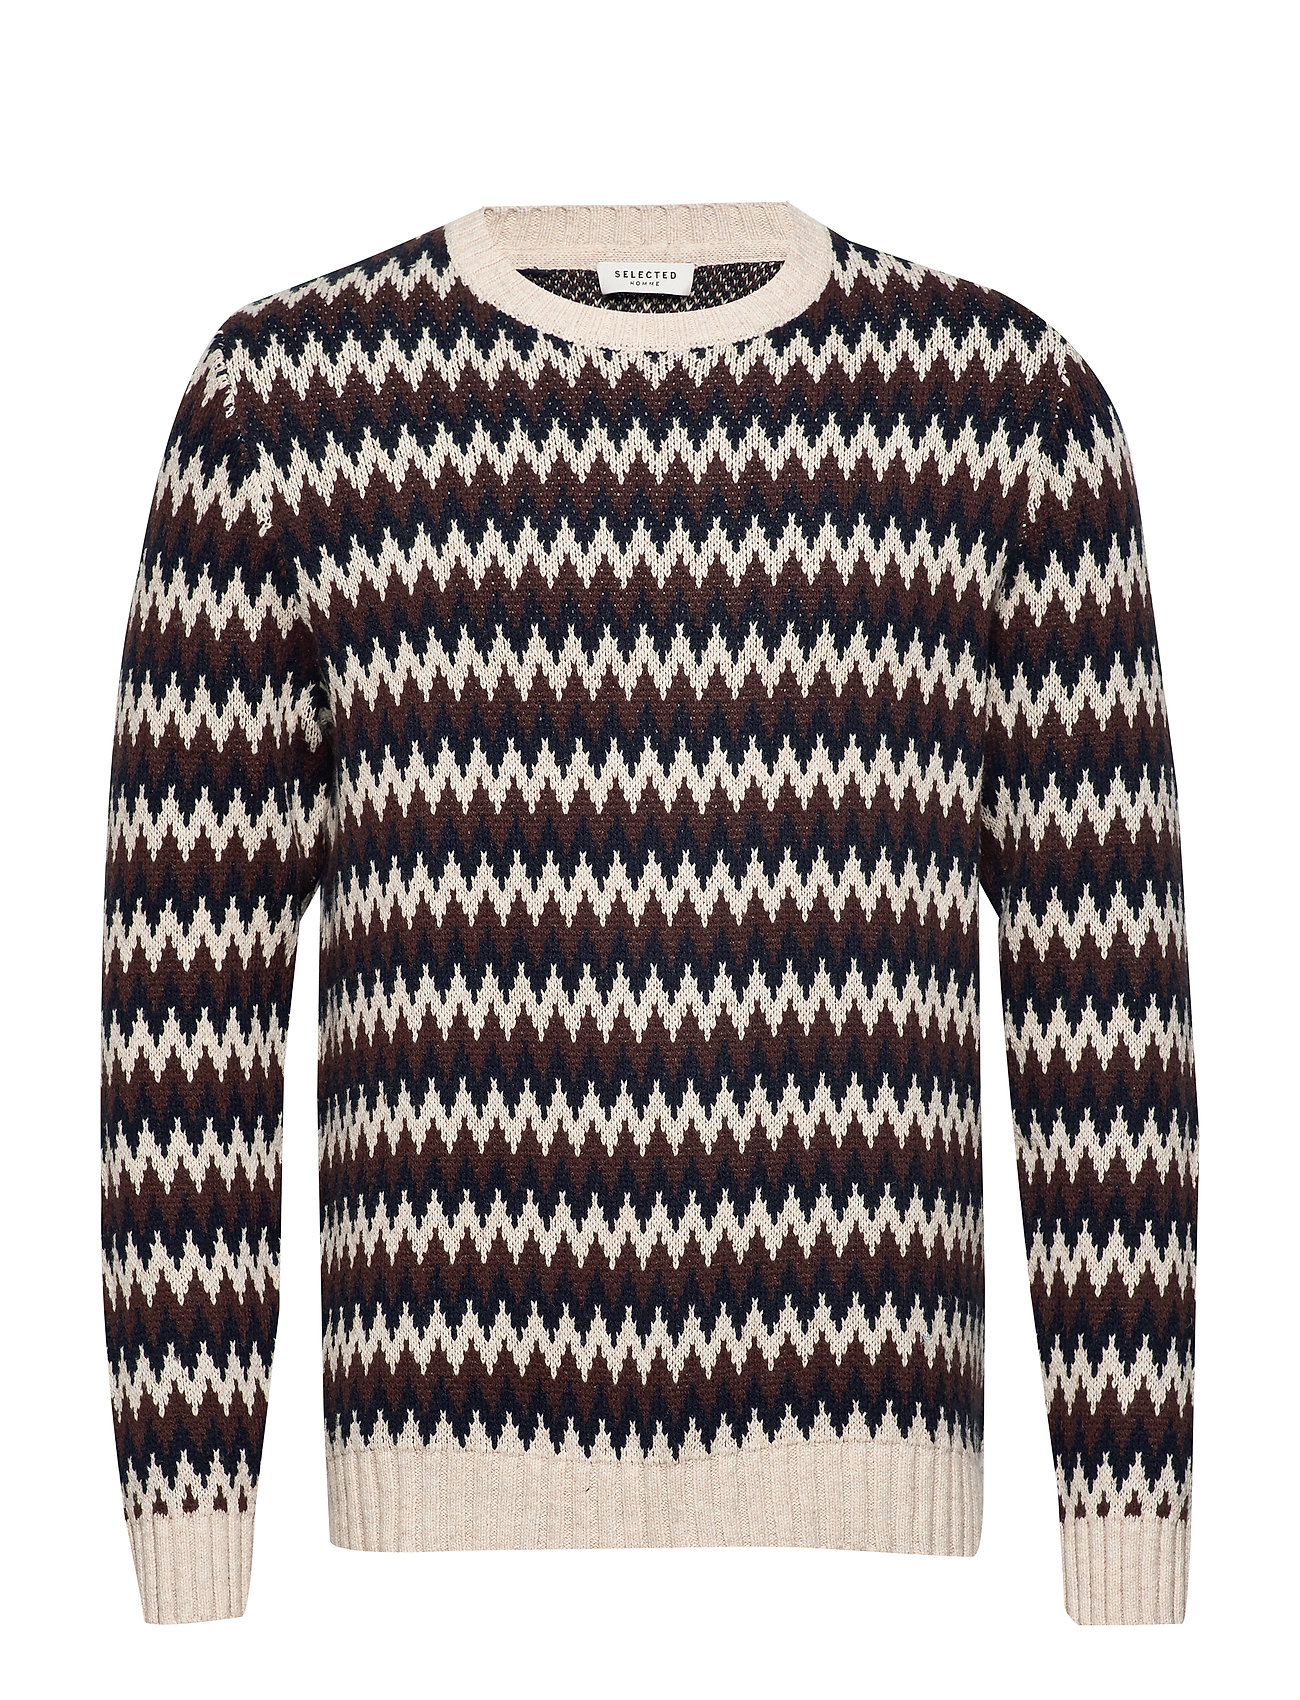 Selected Homme SLHJACK ZIG ZAG CREW NECK W - OYSTER GRAY